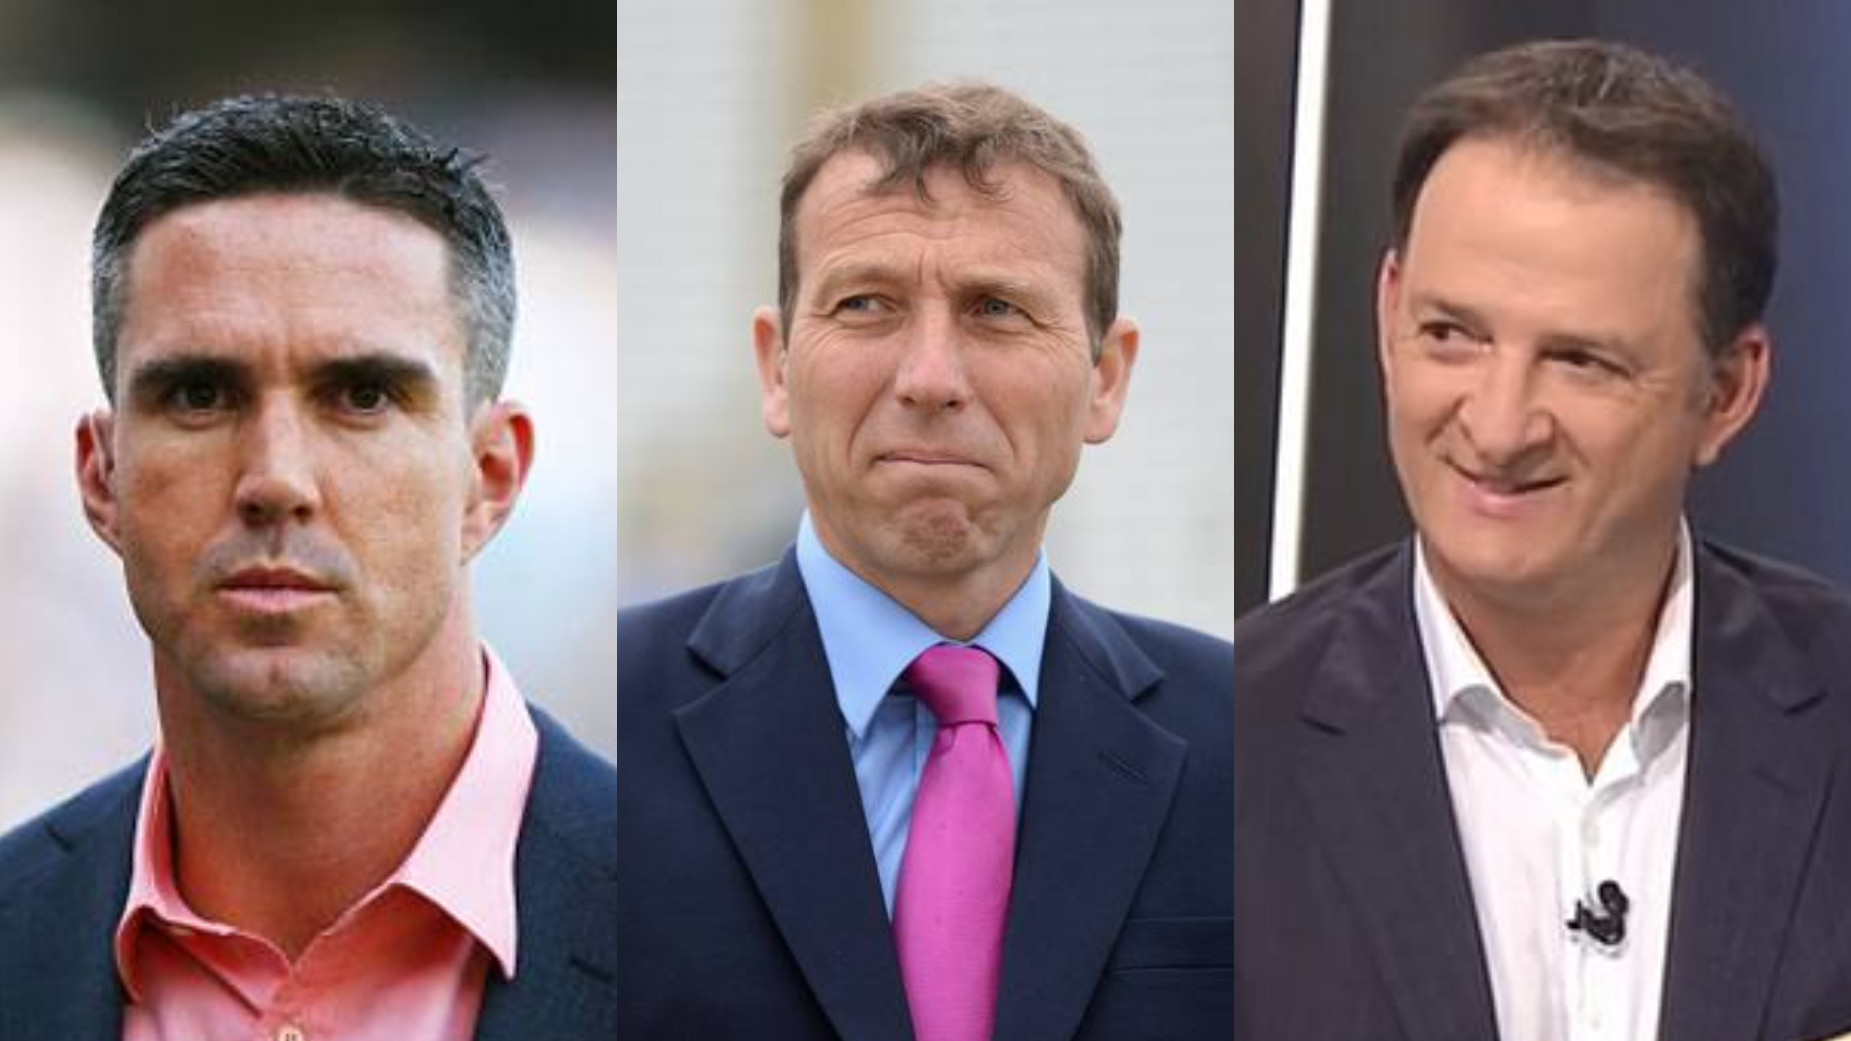 IND v ENG 2021: Kevin Pietersen, Mark Waugh and Michael Atherton offer contrasting views on Chennai pitch for second Test